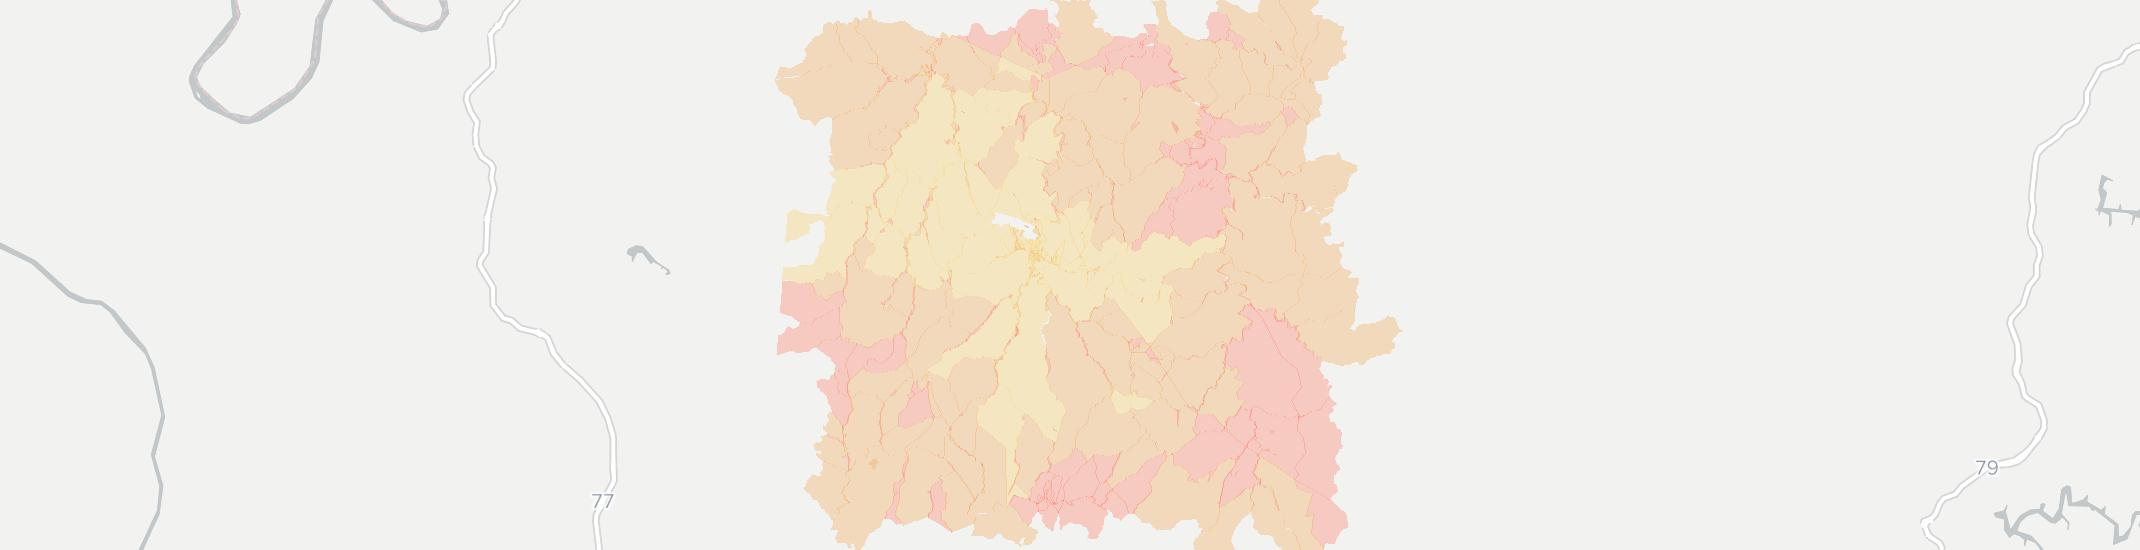 Spencer Internet Competition Map. Click for interactive map.